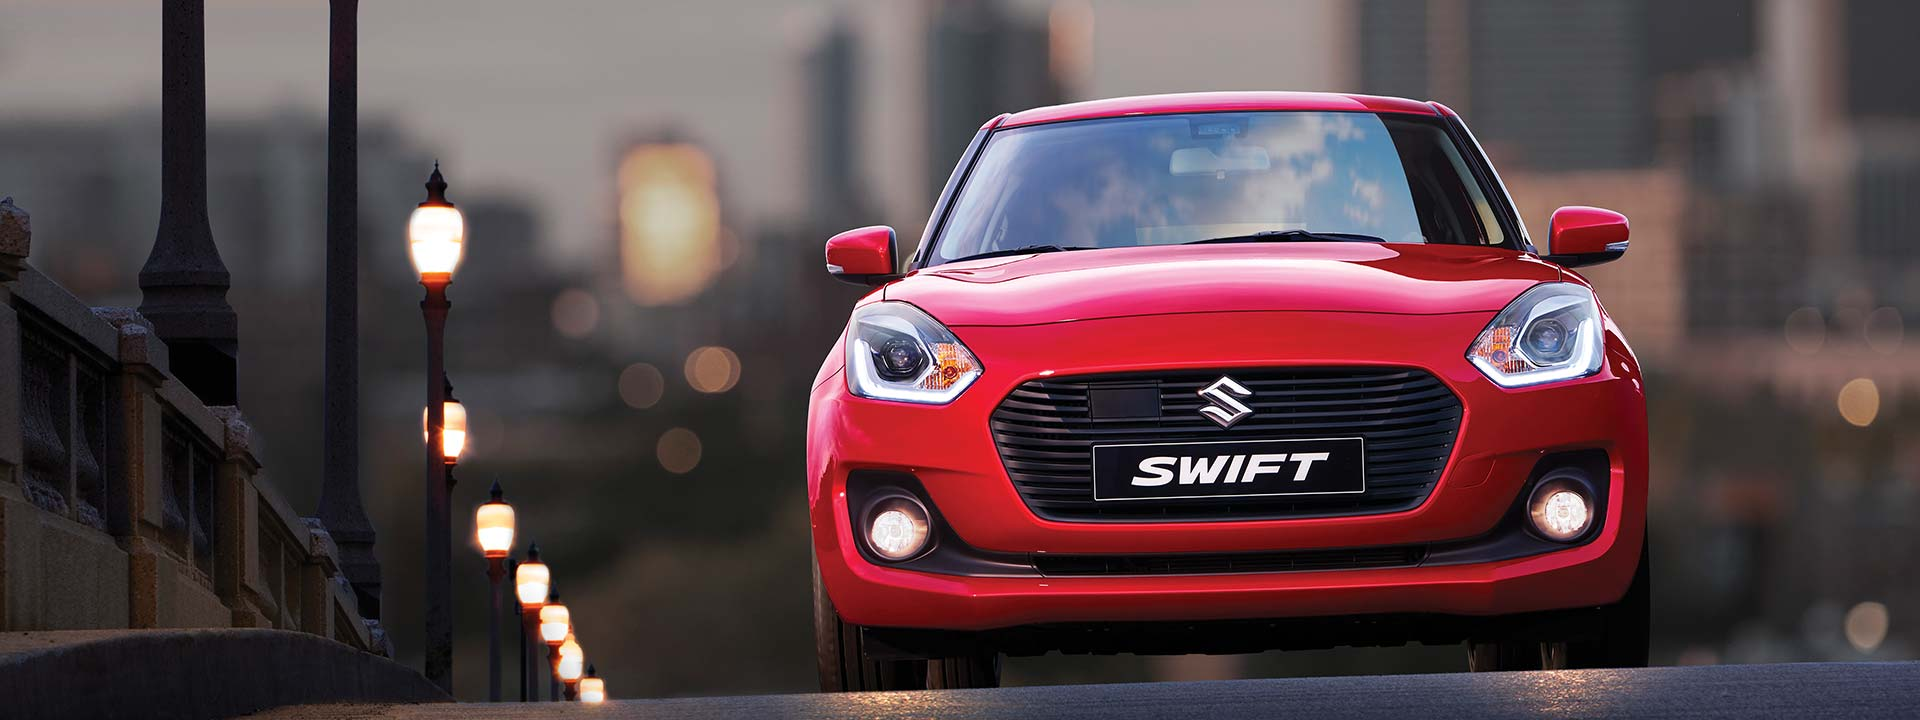 new swift suzuki